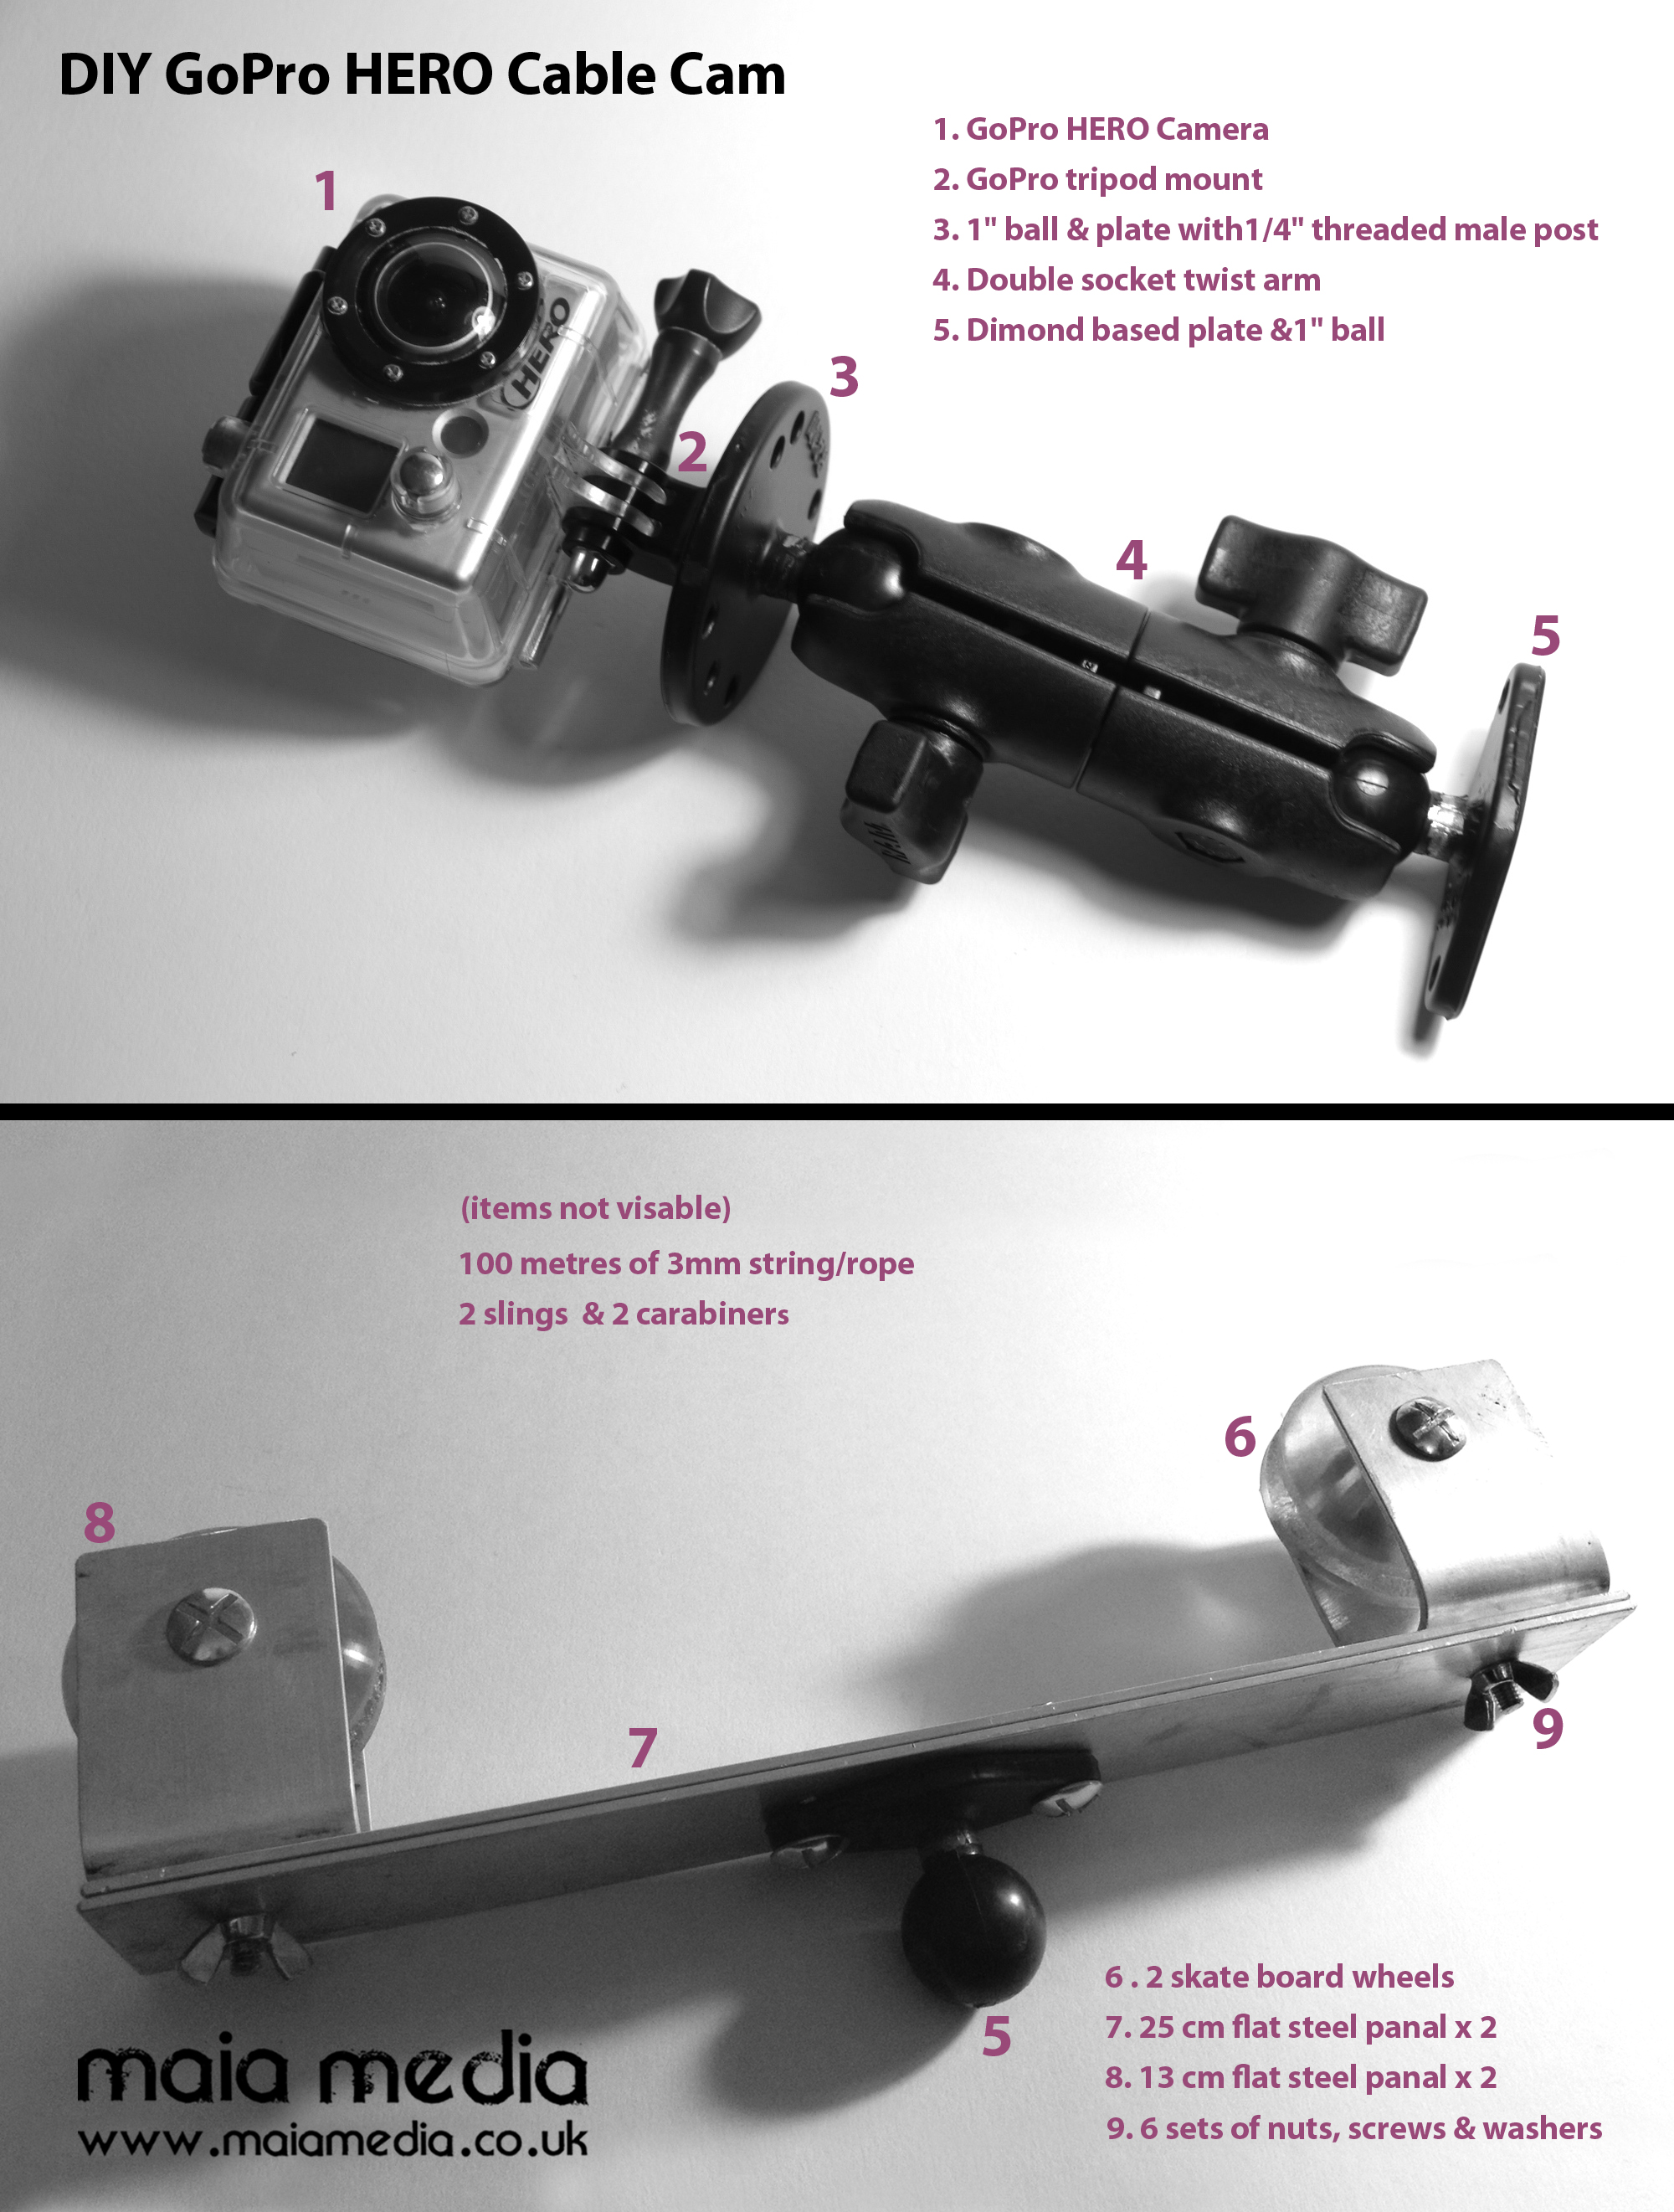 Gopro Cable Cam : Maia media diy gopro cable cam